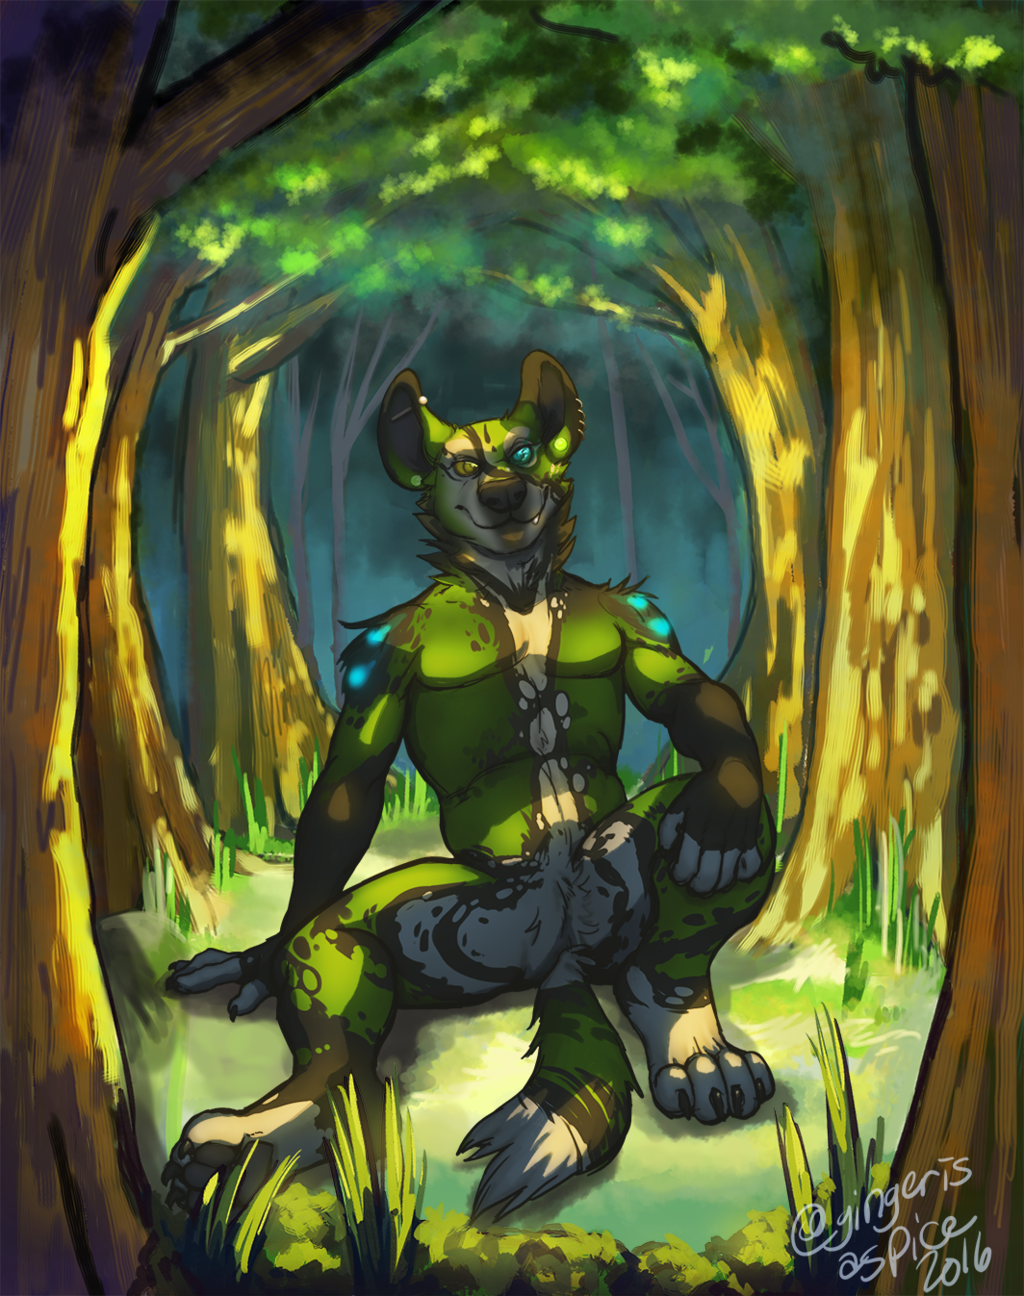 Most recent image: Forest Clearing (SFW)